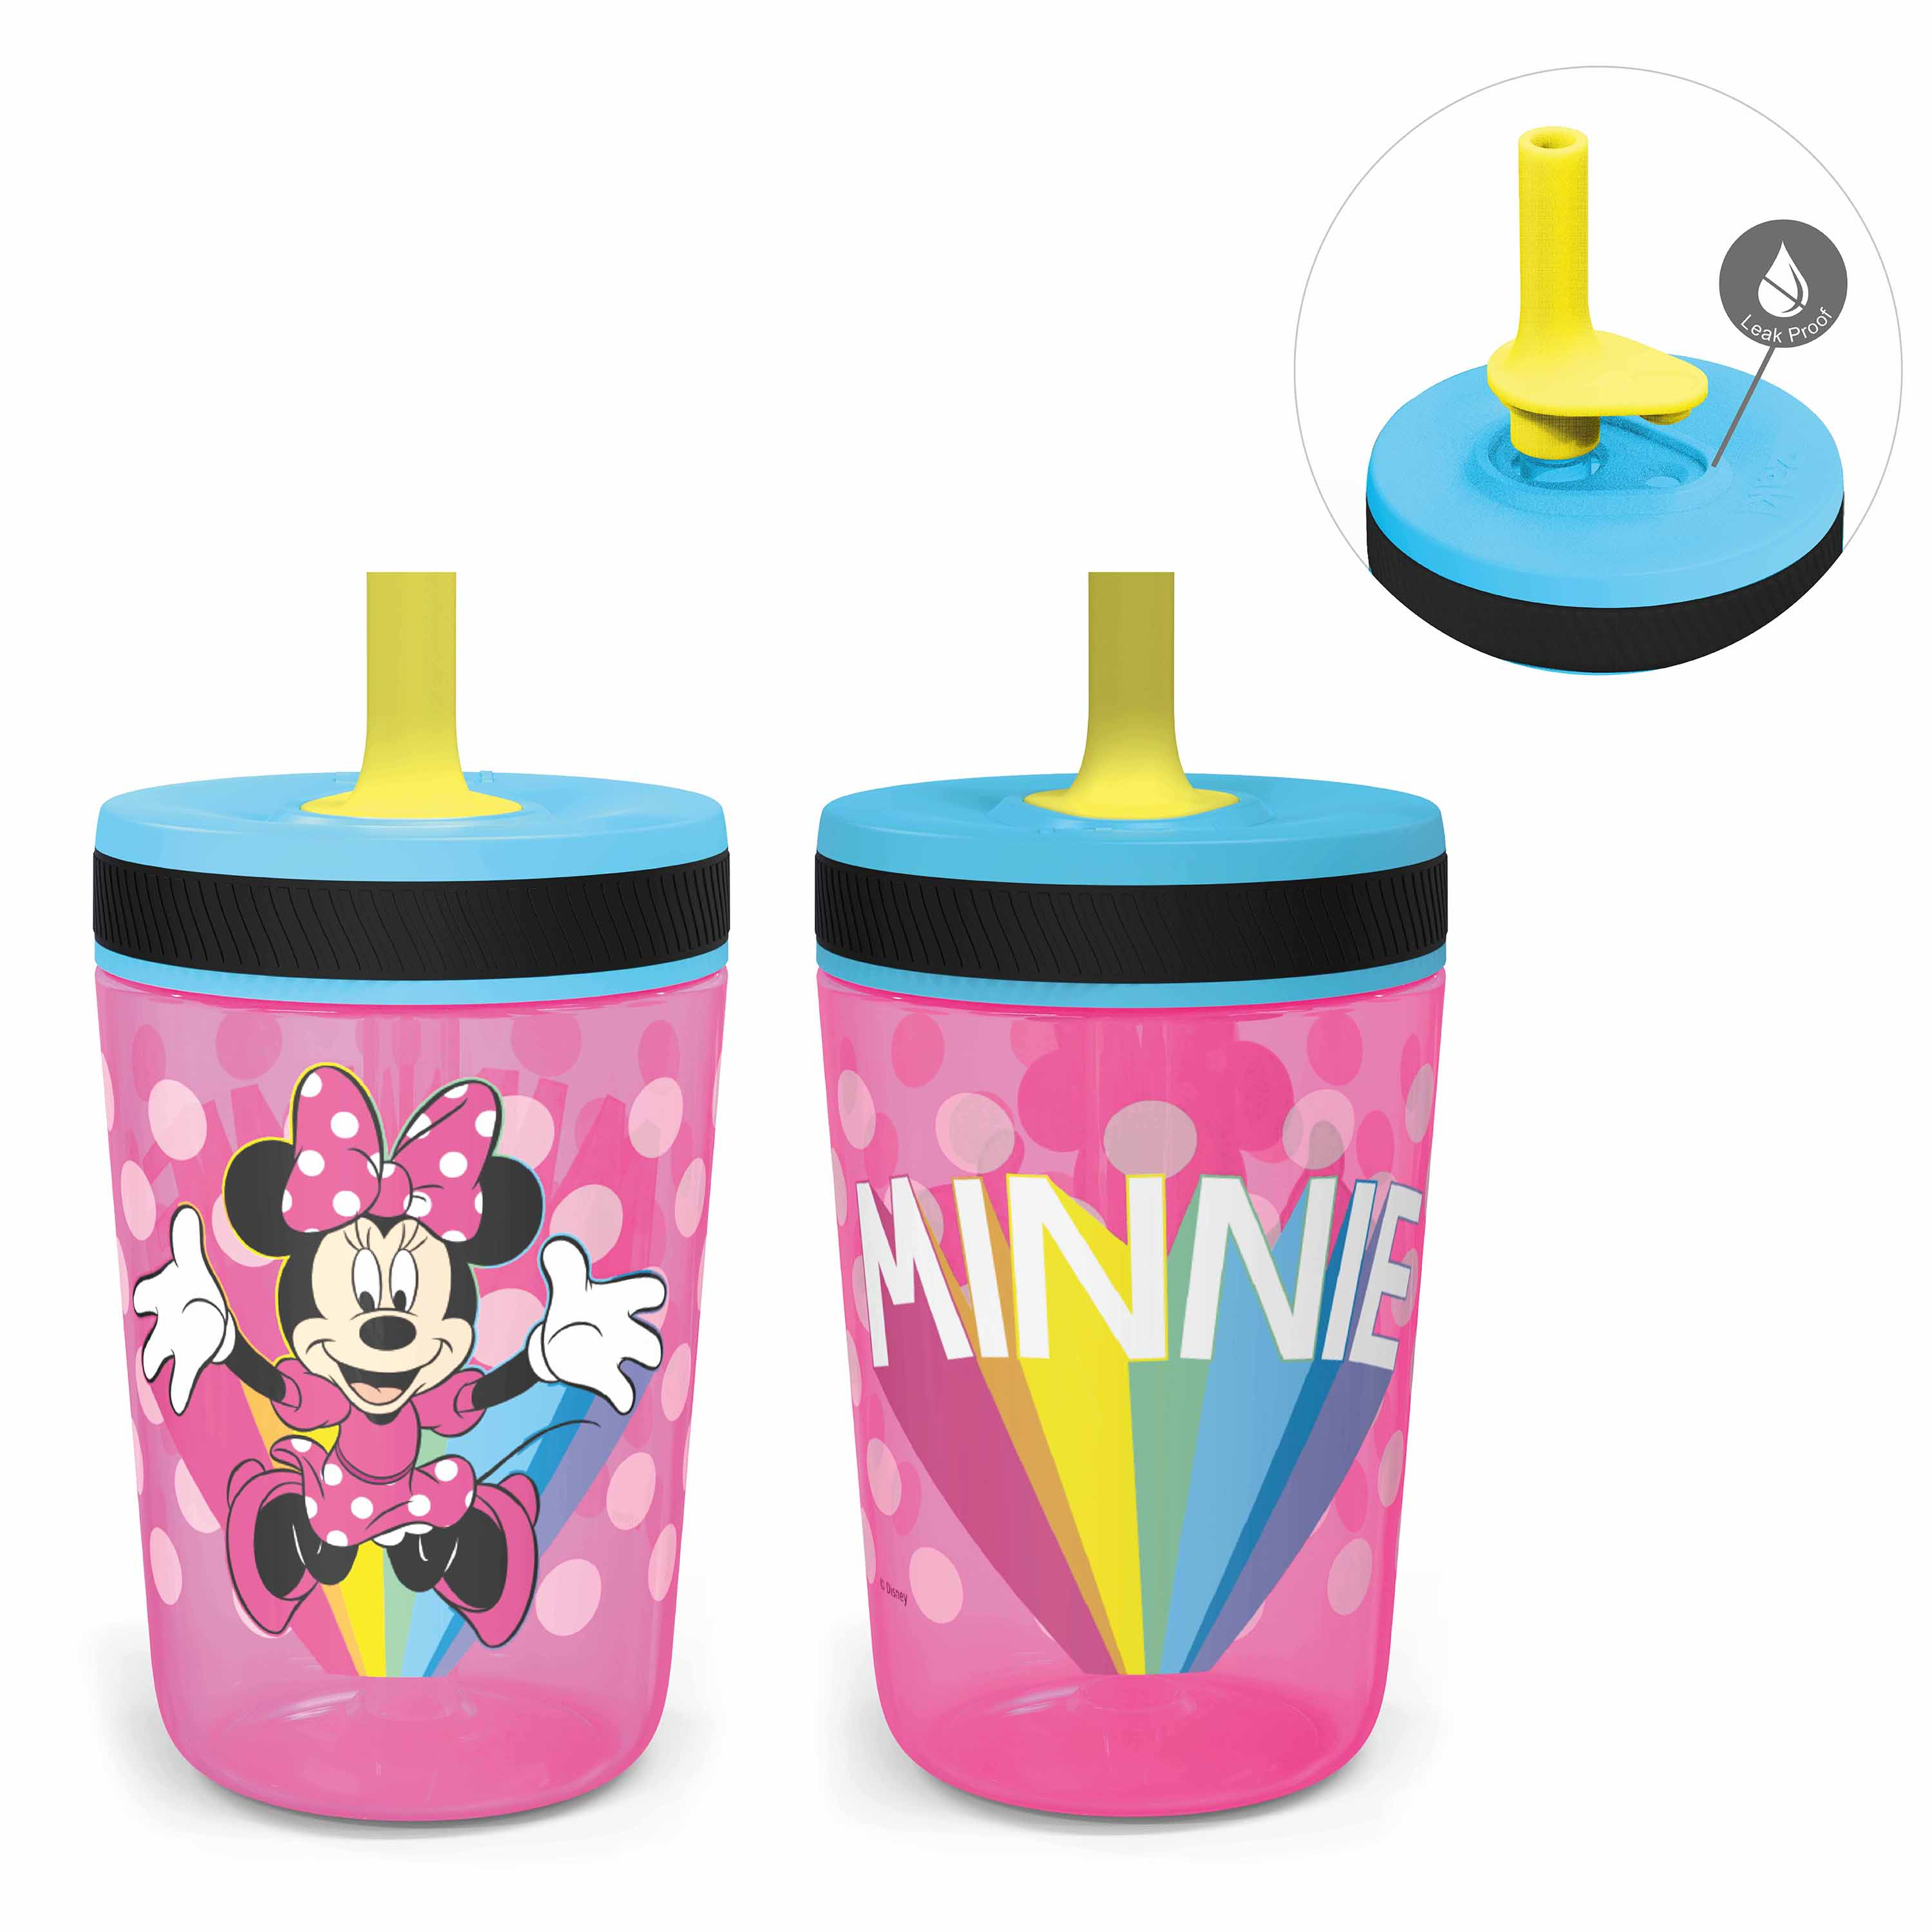 Disney 15  ounce Plastic Tumbler, Minnie Mouse, 2-piece set slideshow image 2